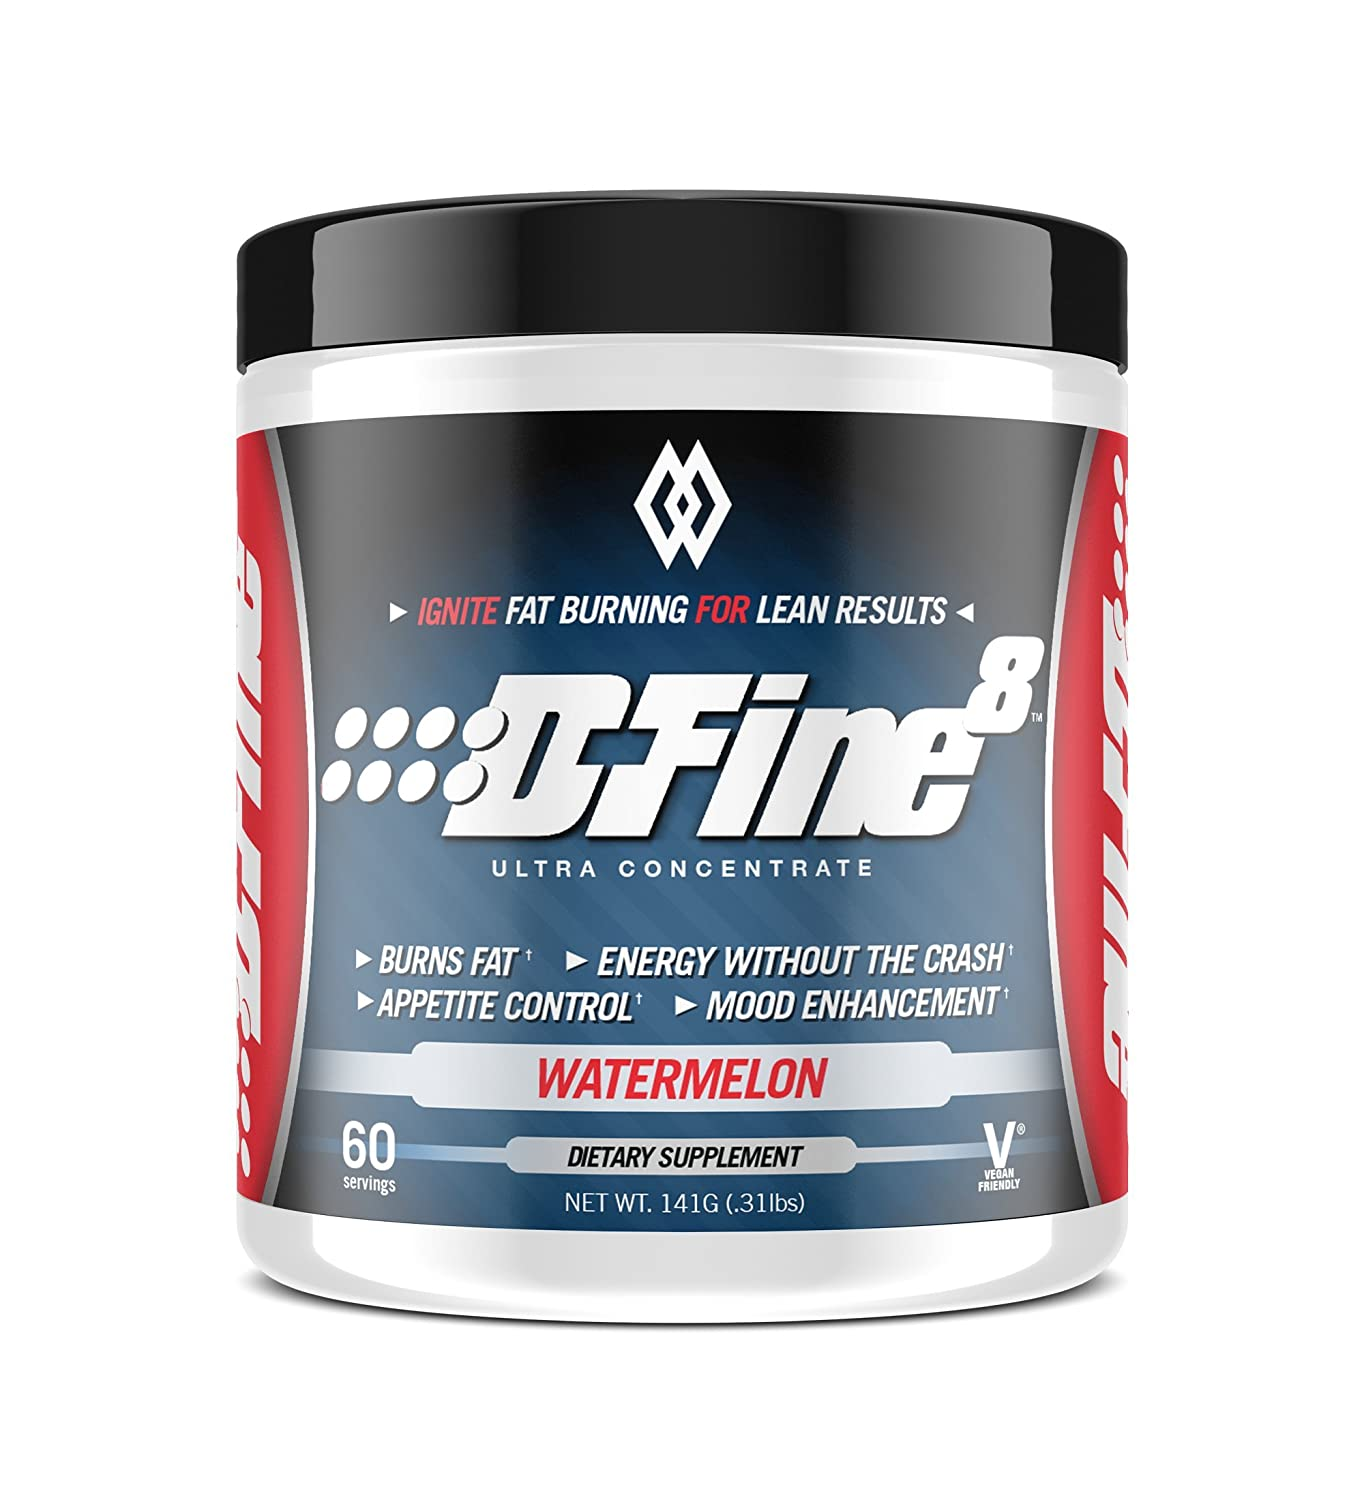 Musclewerks D-Fine8 – Fat Burner Thermogenic, Pre Workout Powder, Appetite Suppressant, Energy Weight Loss Supplement for Men Women – 60 Servings Vegan Friendly Watermelon